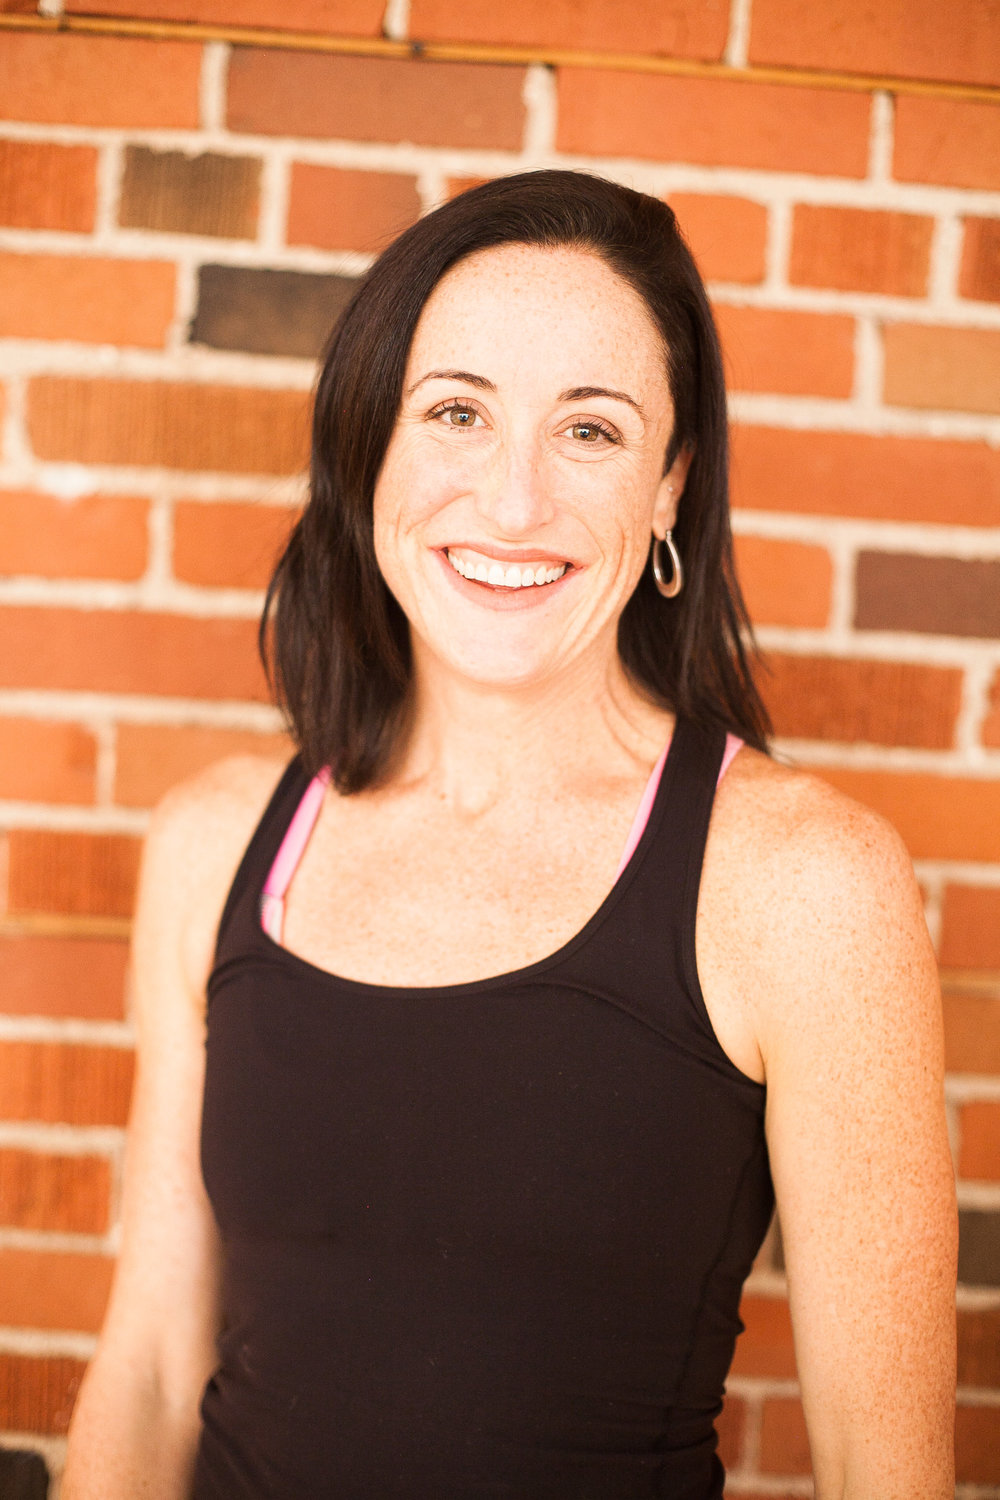 Barb lives to move! After many years working at the hospital as a respiratory therapist she decided that fitness was her true passion and made the career switch.  Come see how Barb can inspire you in her GETnFit and GETnRIP'D classes at YOGAthletix.